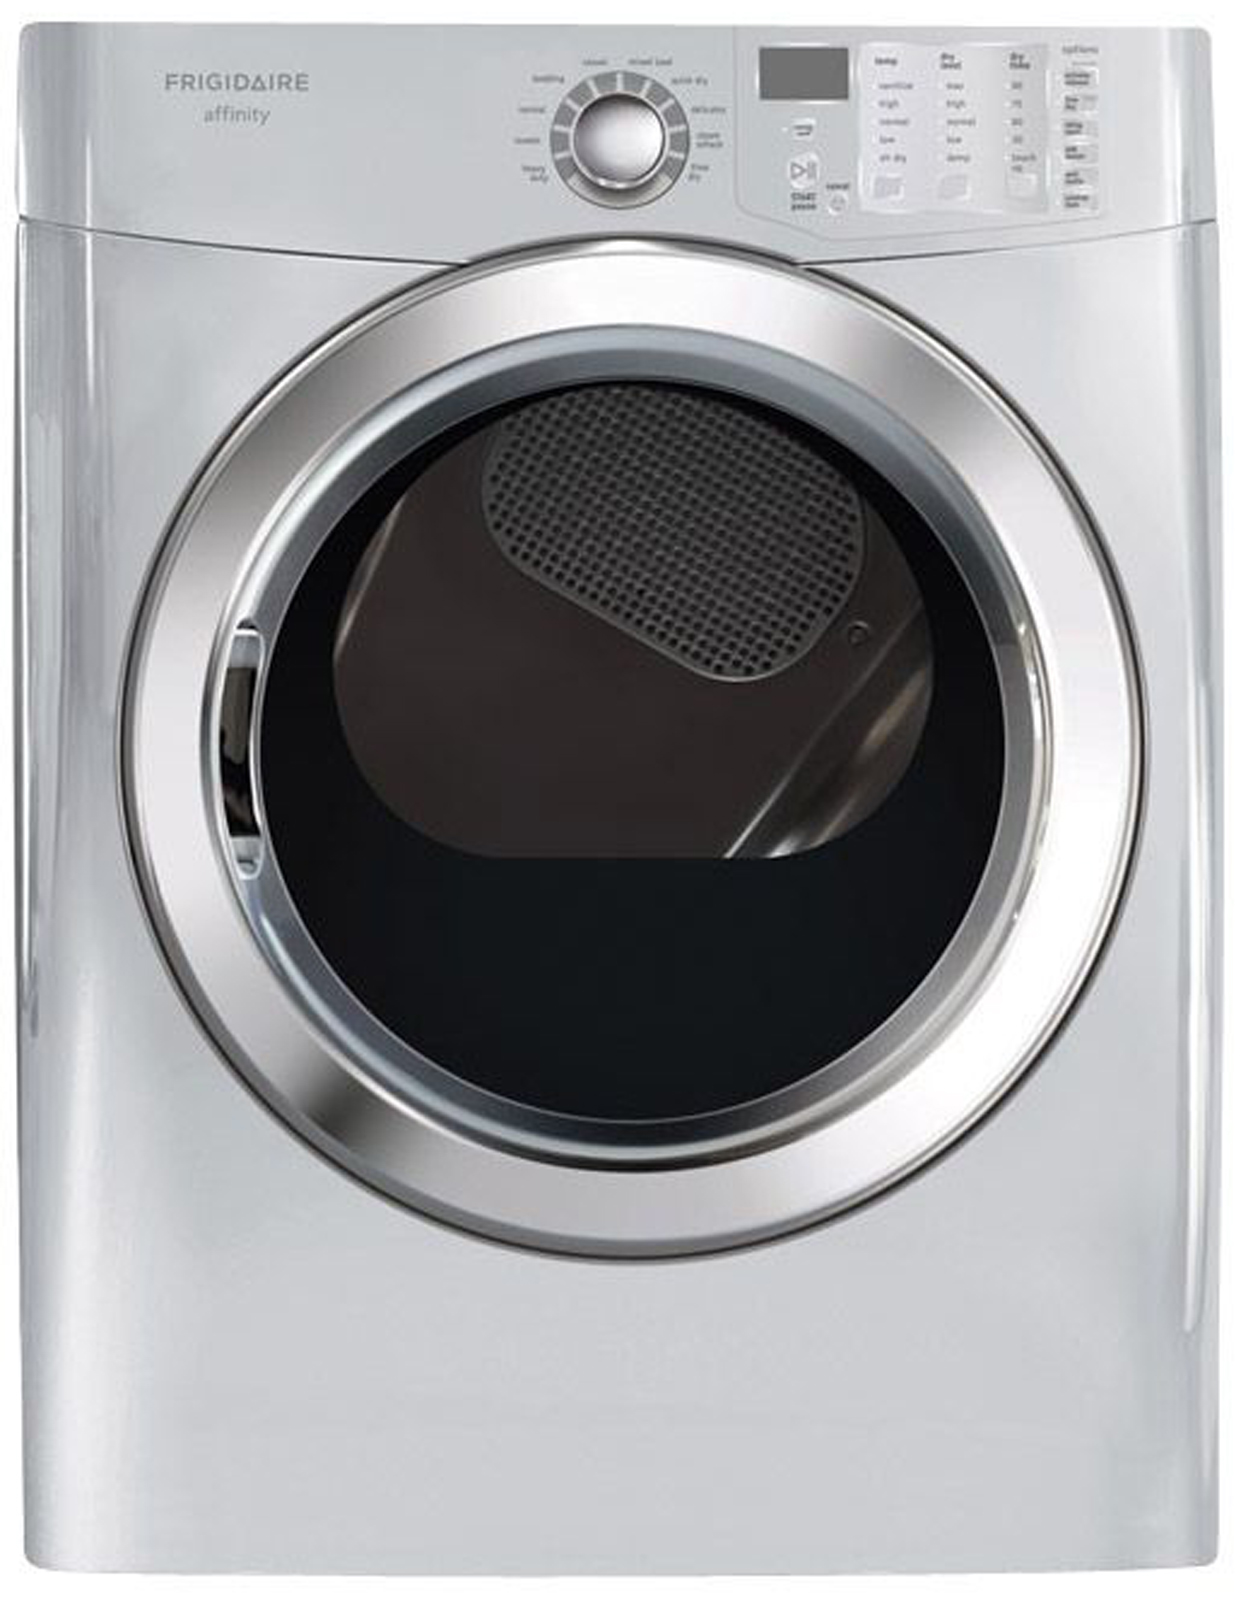 Frigidaire 7.0 cu. ft. Ready Steam™ Electric Dryer w/ Stainless Steel Drum - Classic Silver